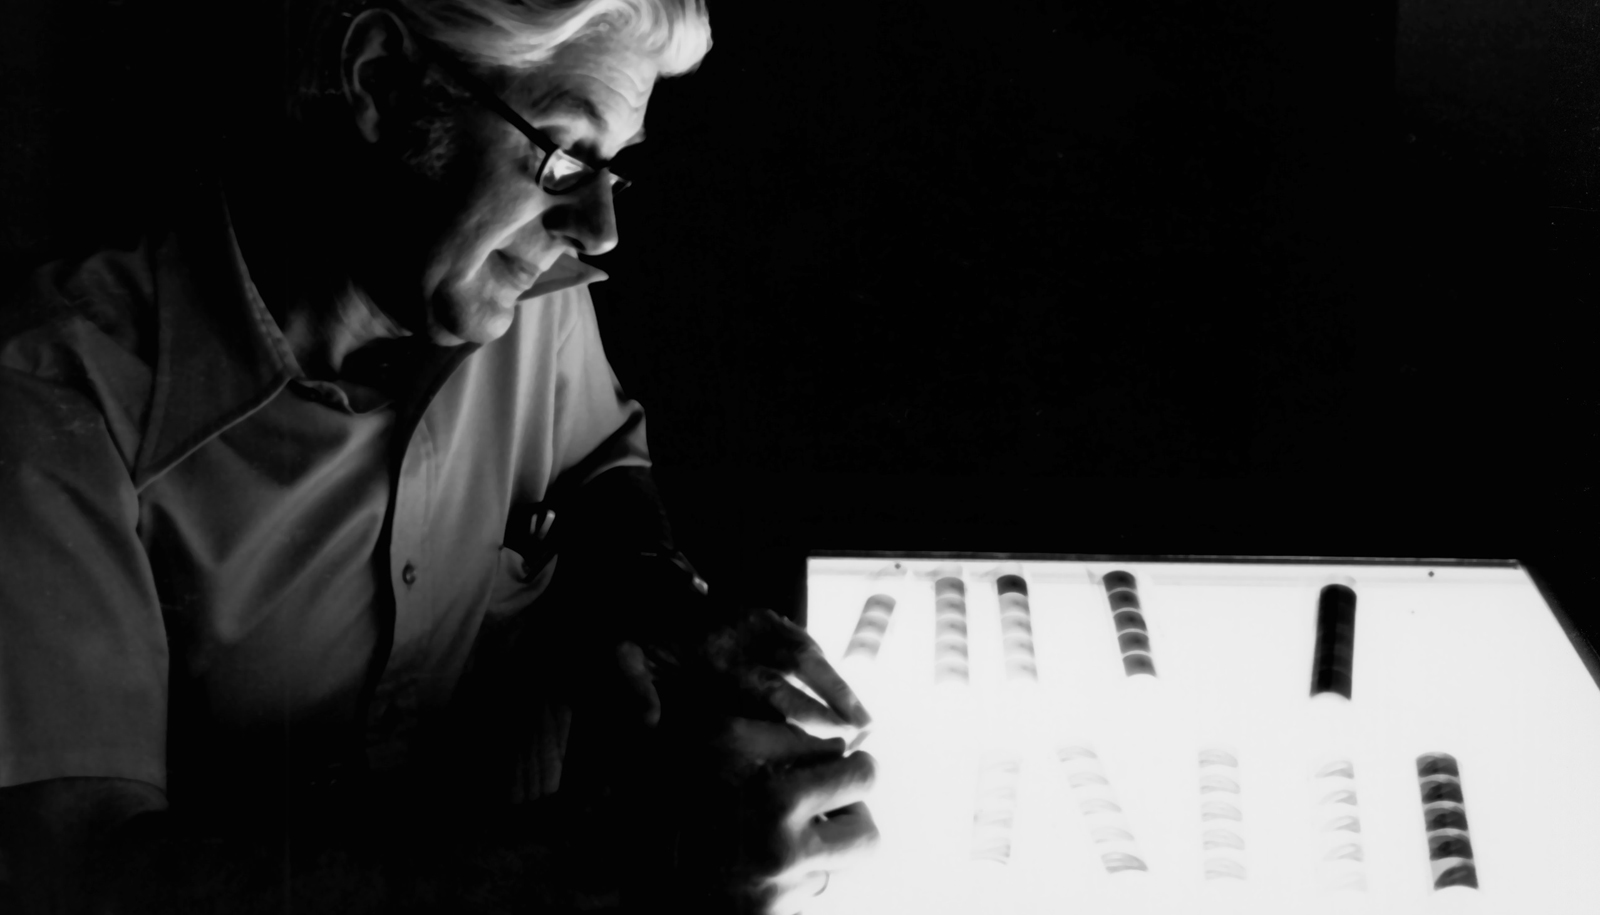 man looks at negatives on lightbox